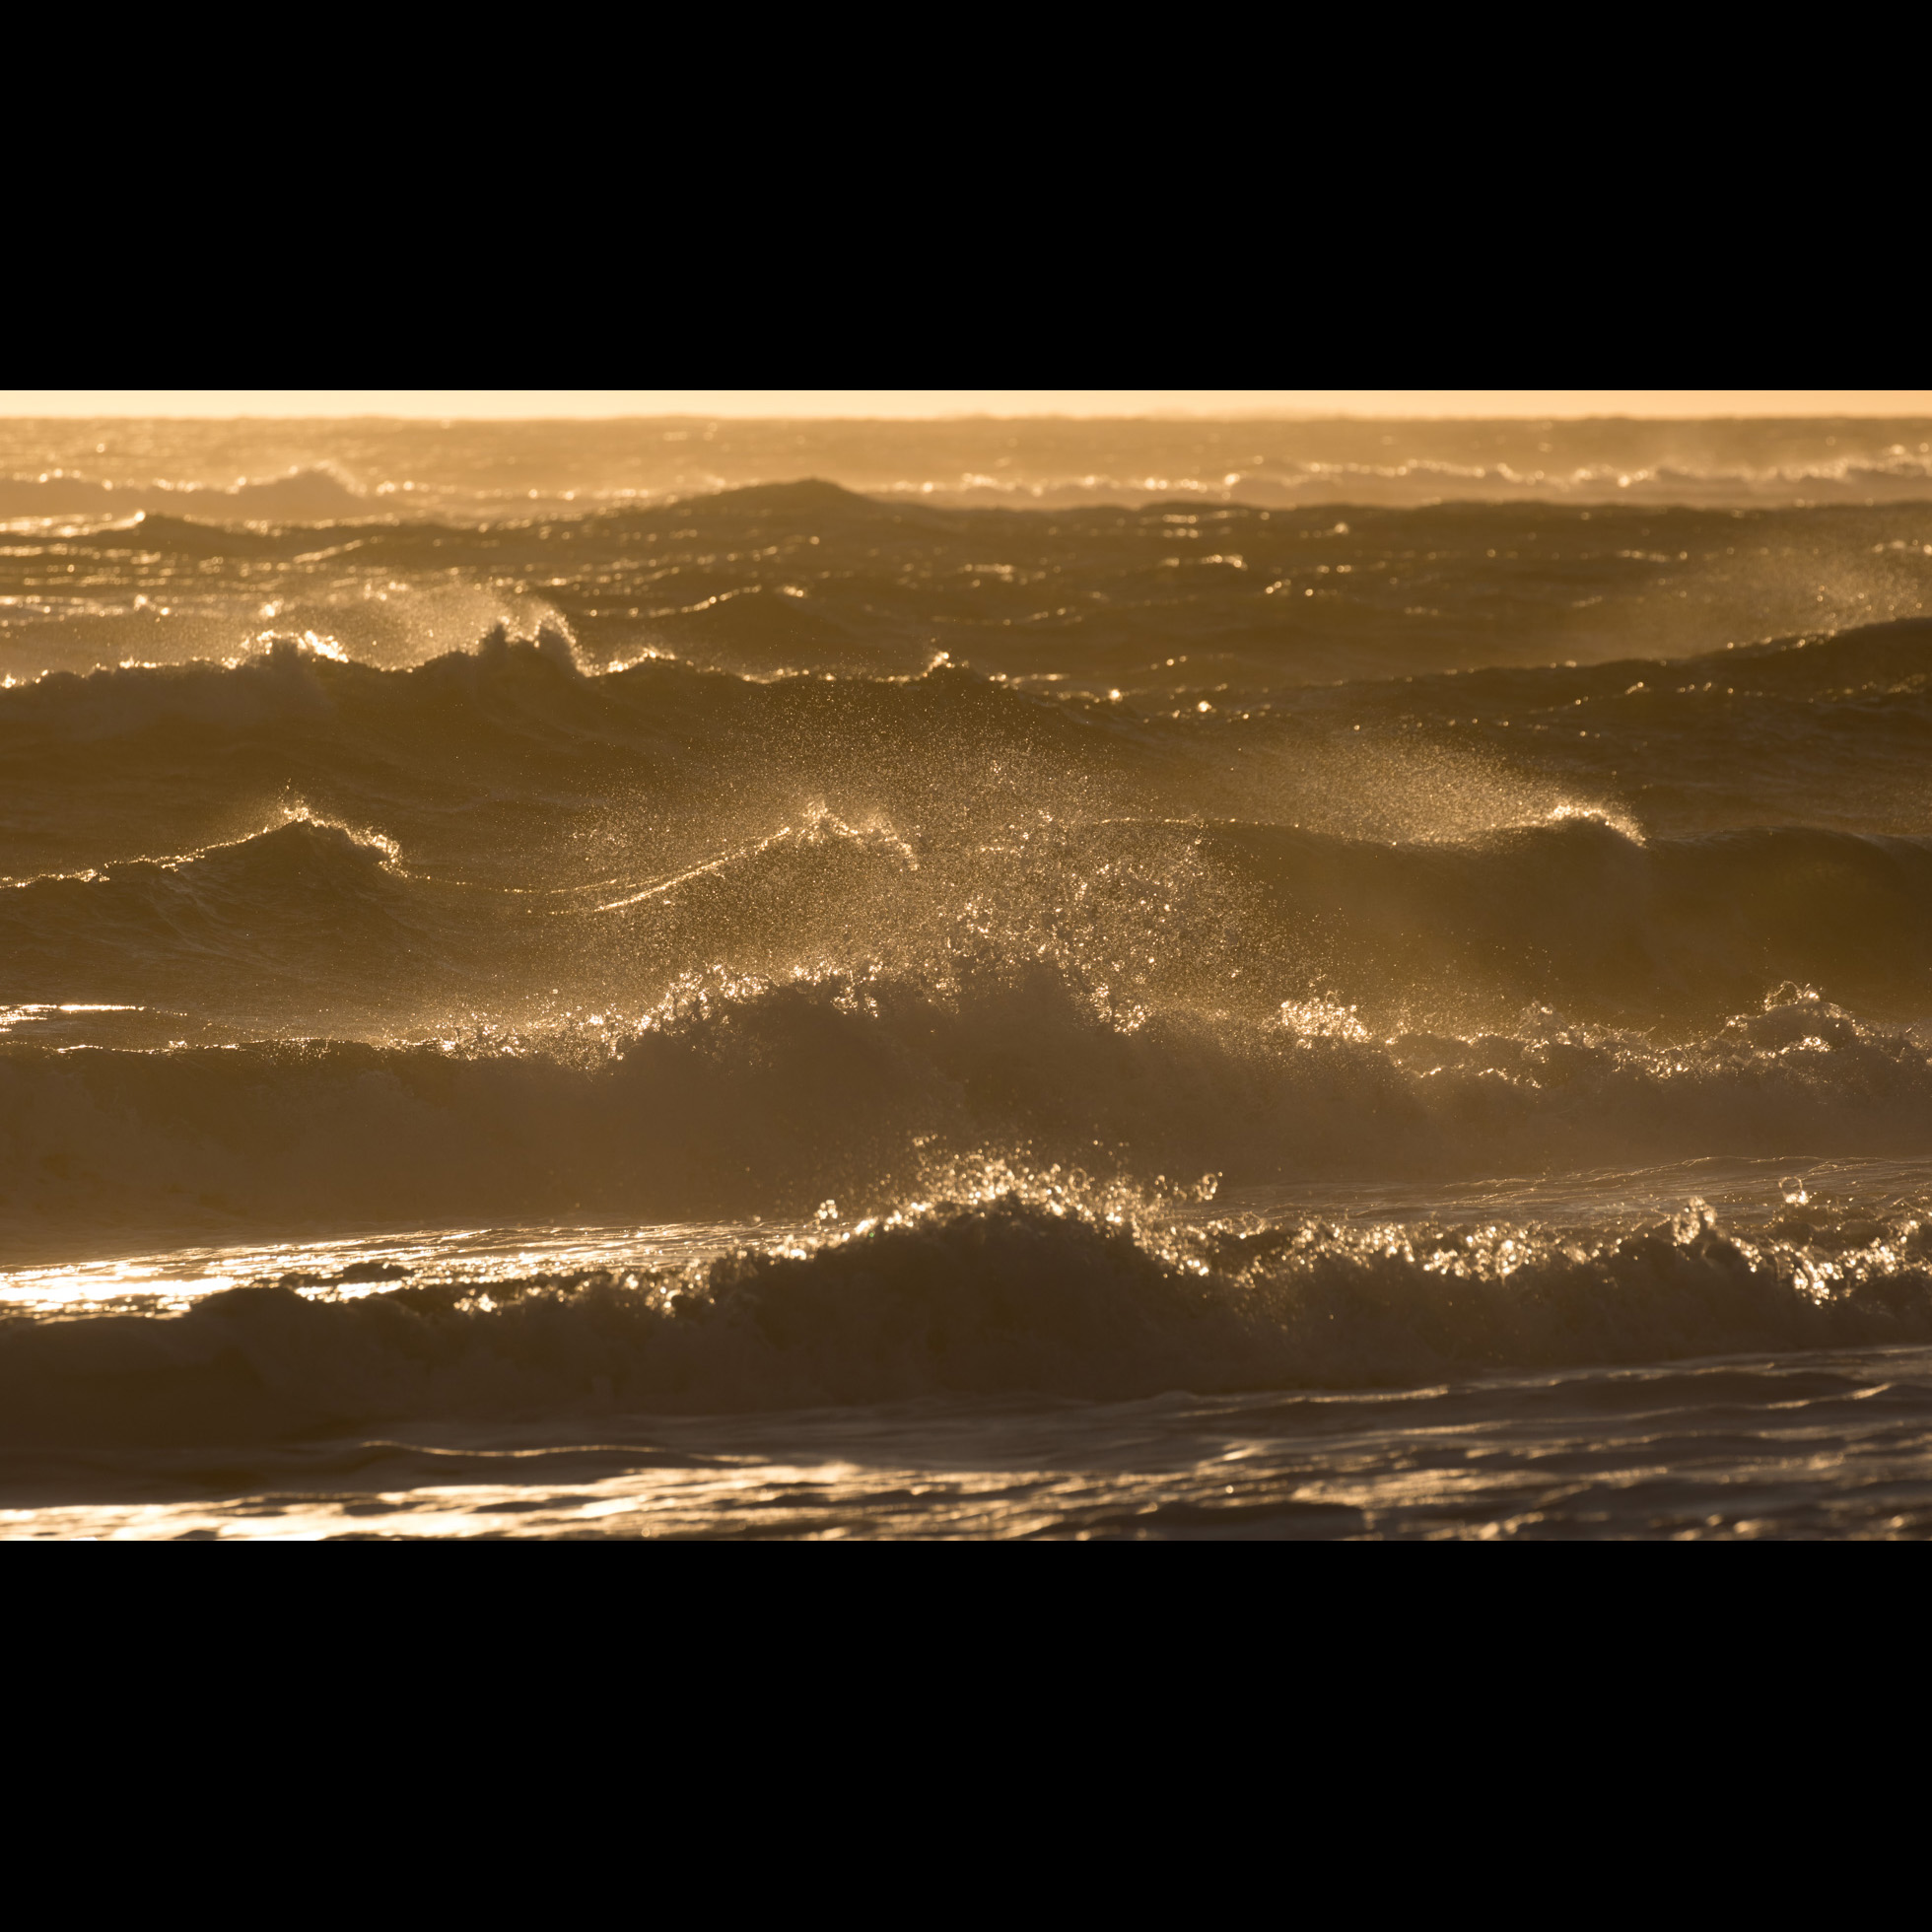 2.26 SUN AND WAVES